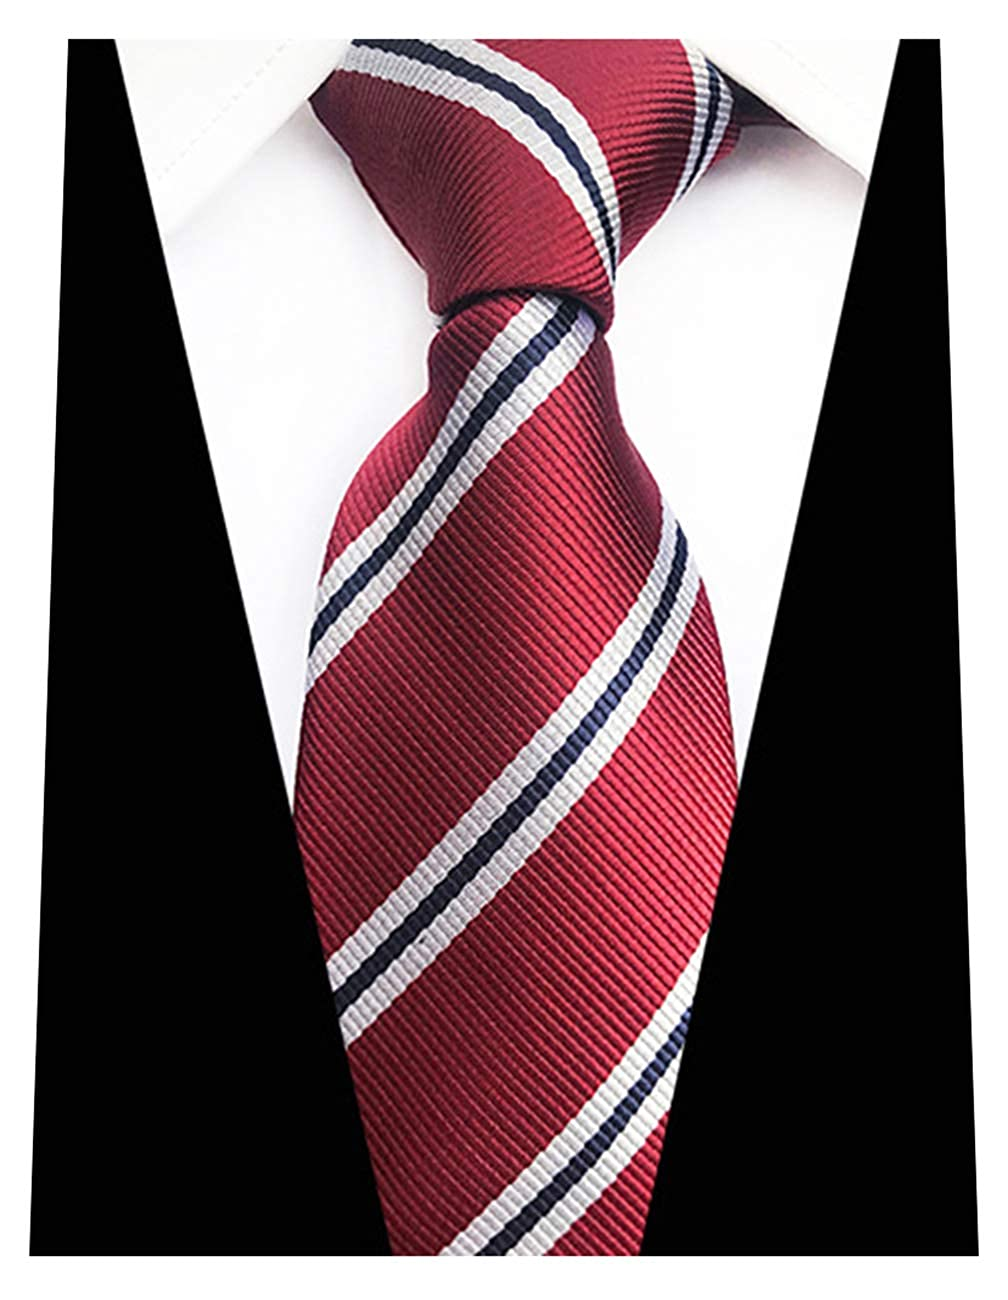 Downton Abbey Men's Fashion Guide MENDENG New Mens Stripe Paisley 100% Silk Necktie Classic Striped Formal Ties $9.99 AT vintagedancer.com